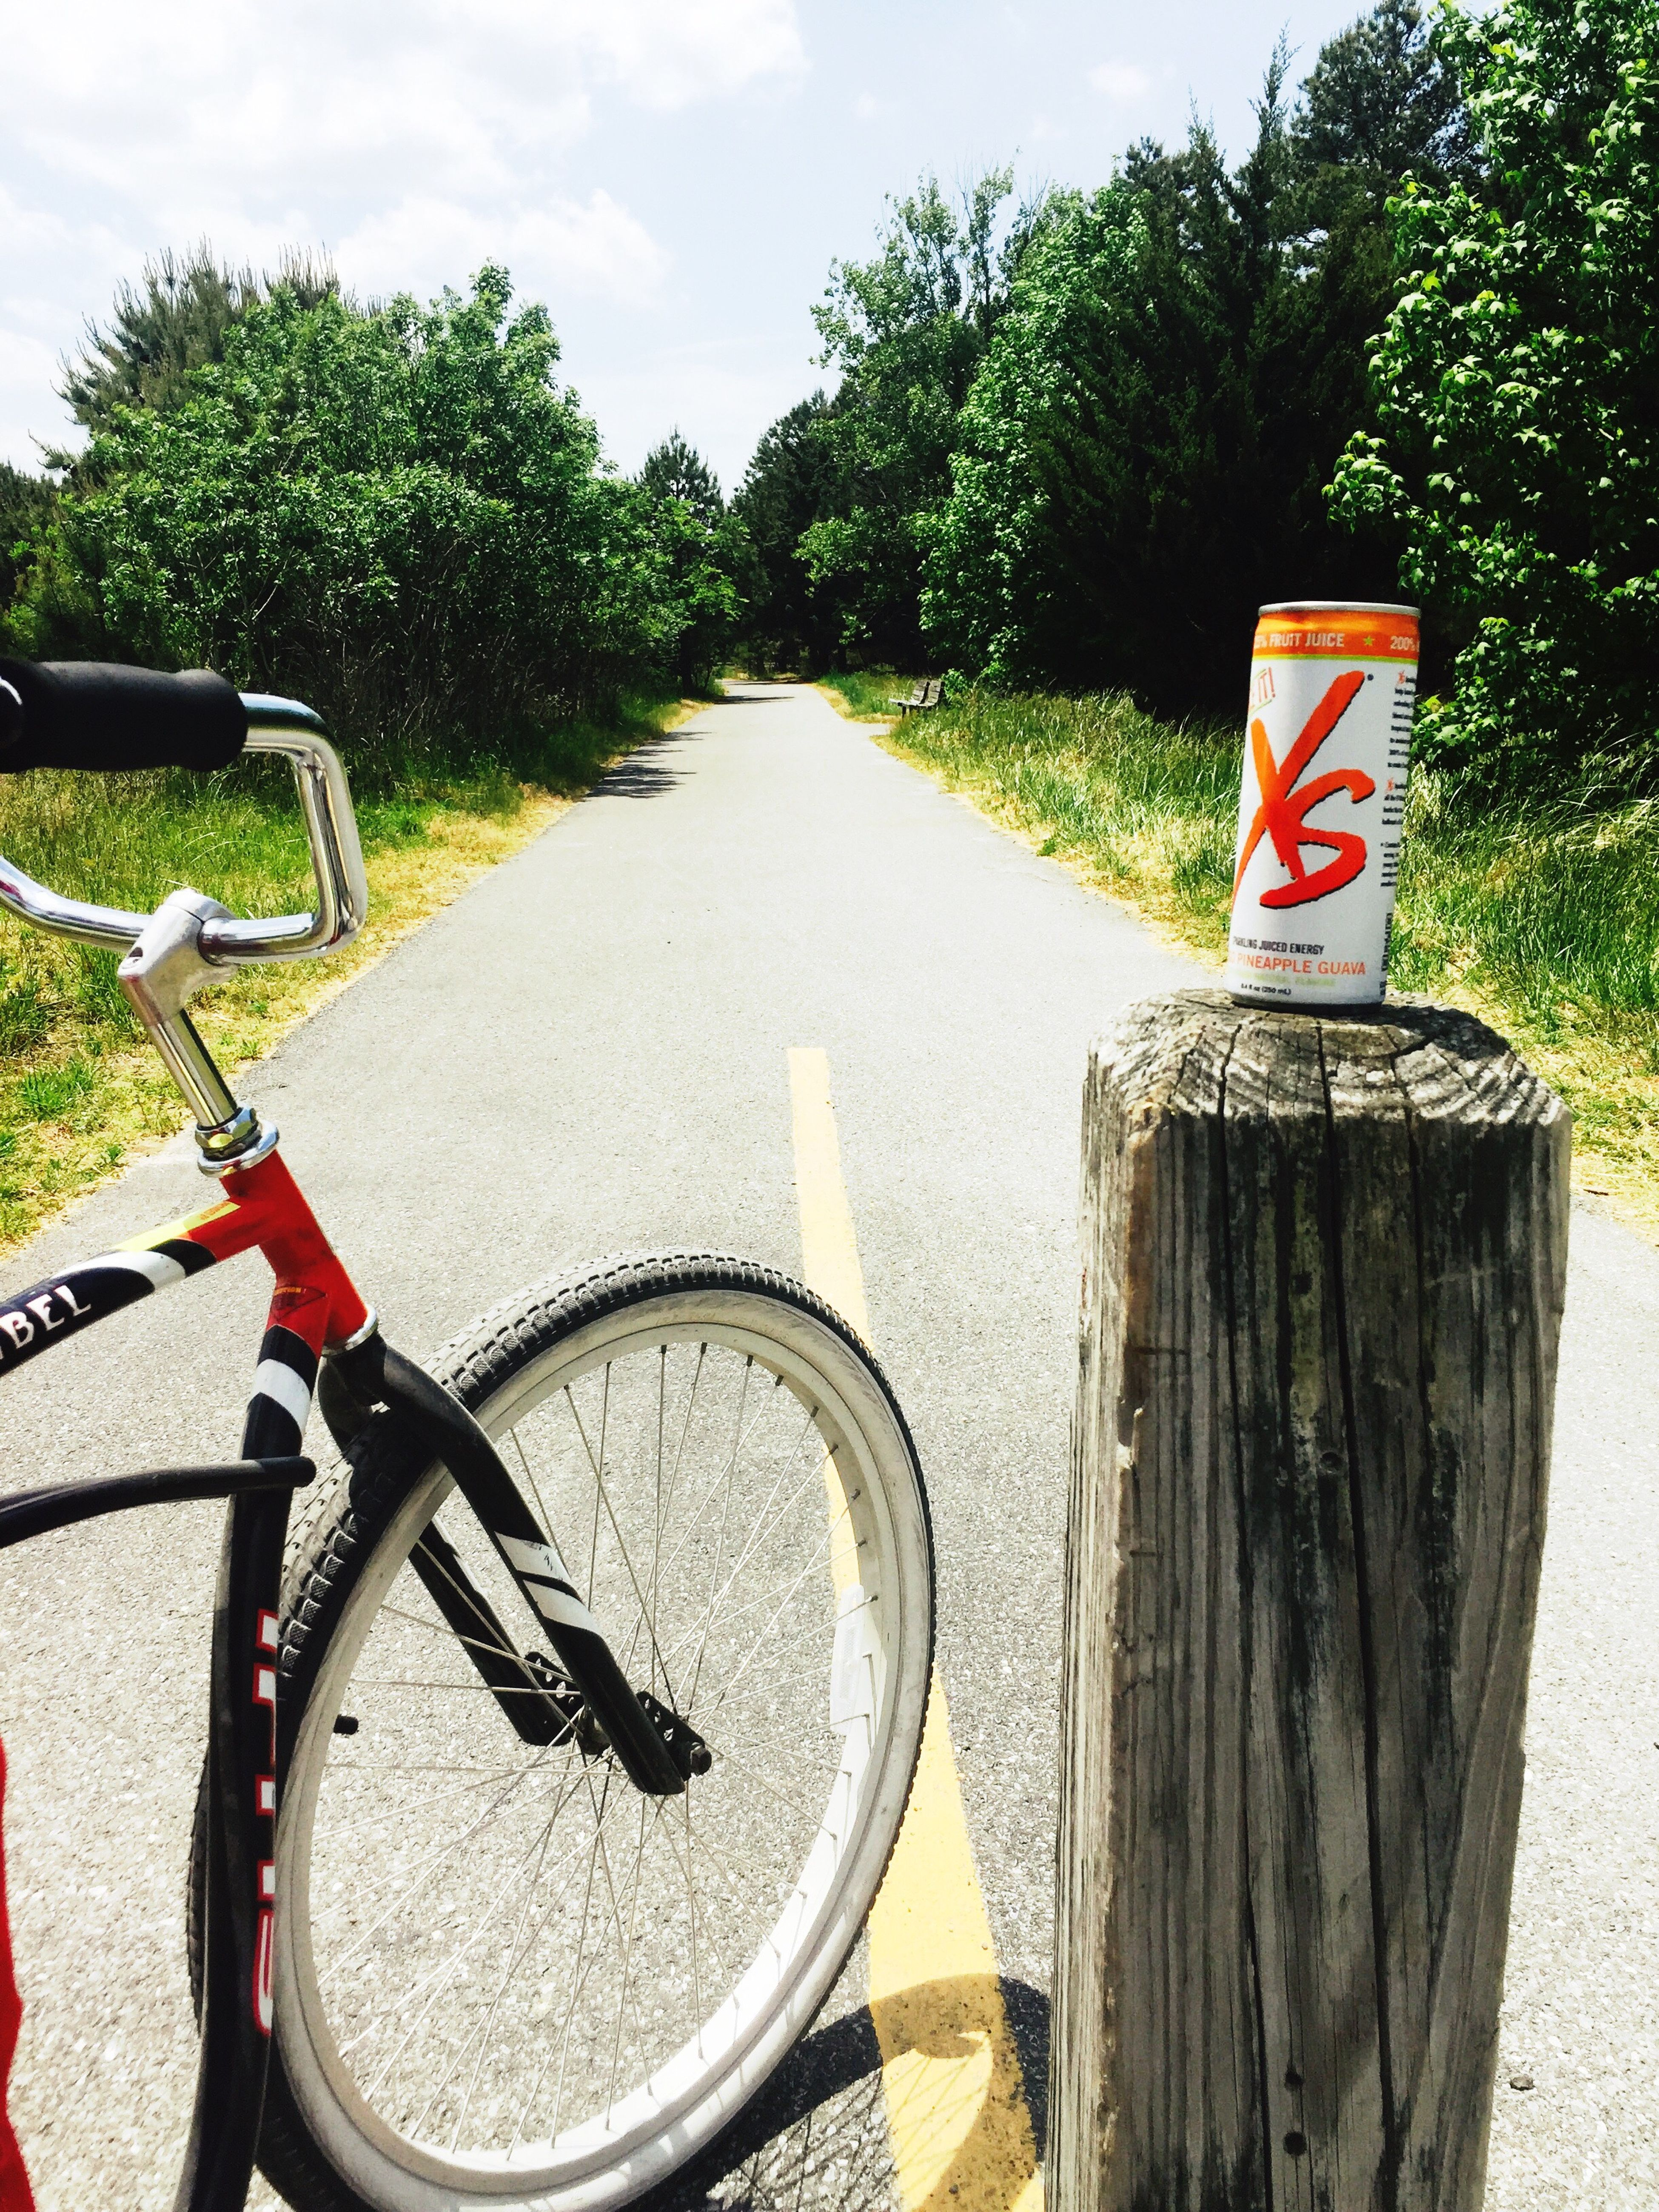 Stay fit, you have only one body! XS Energy VitaminB12 Healthyenergydrink Stay Active Live Long Bike Ride State Park